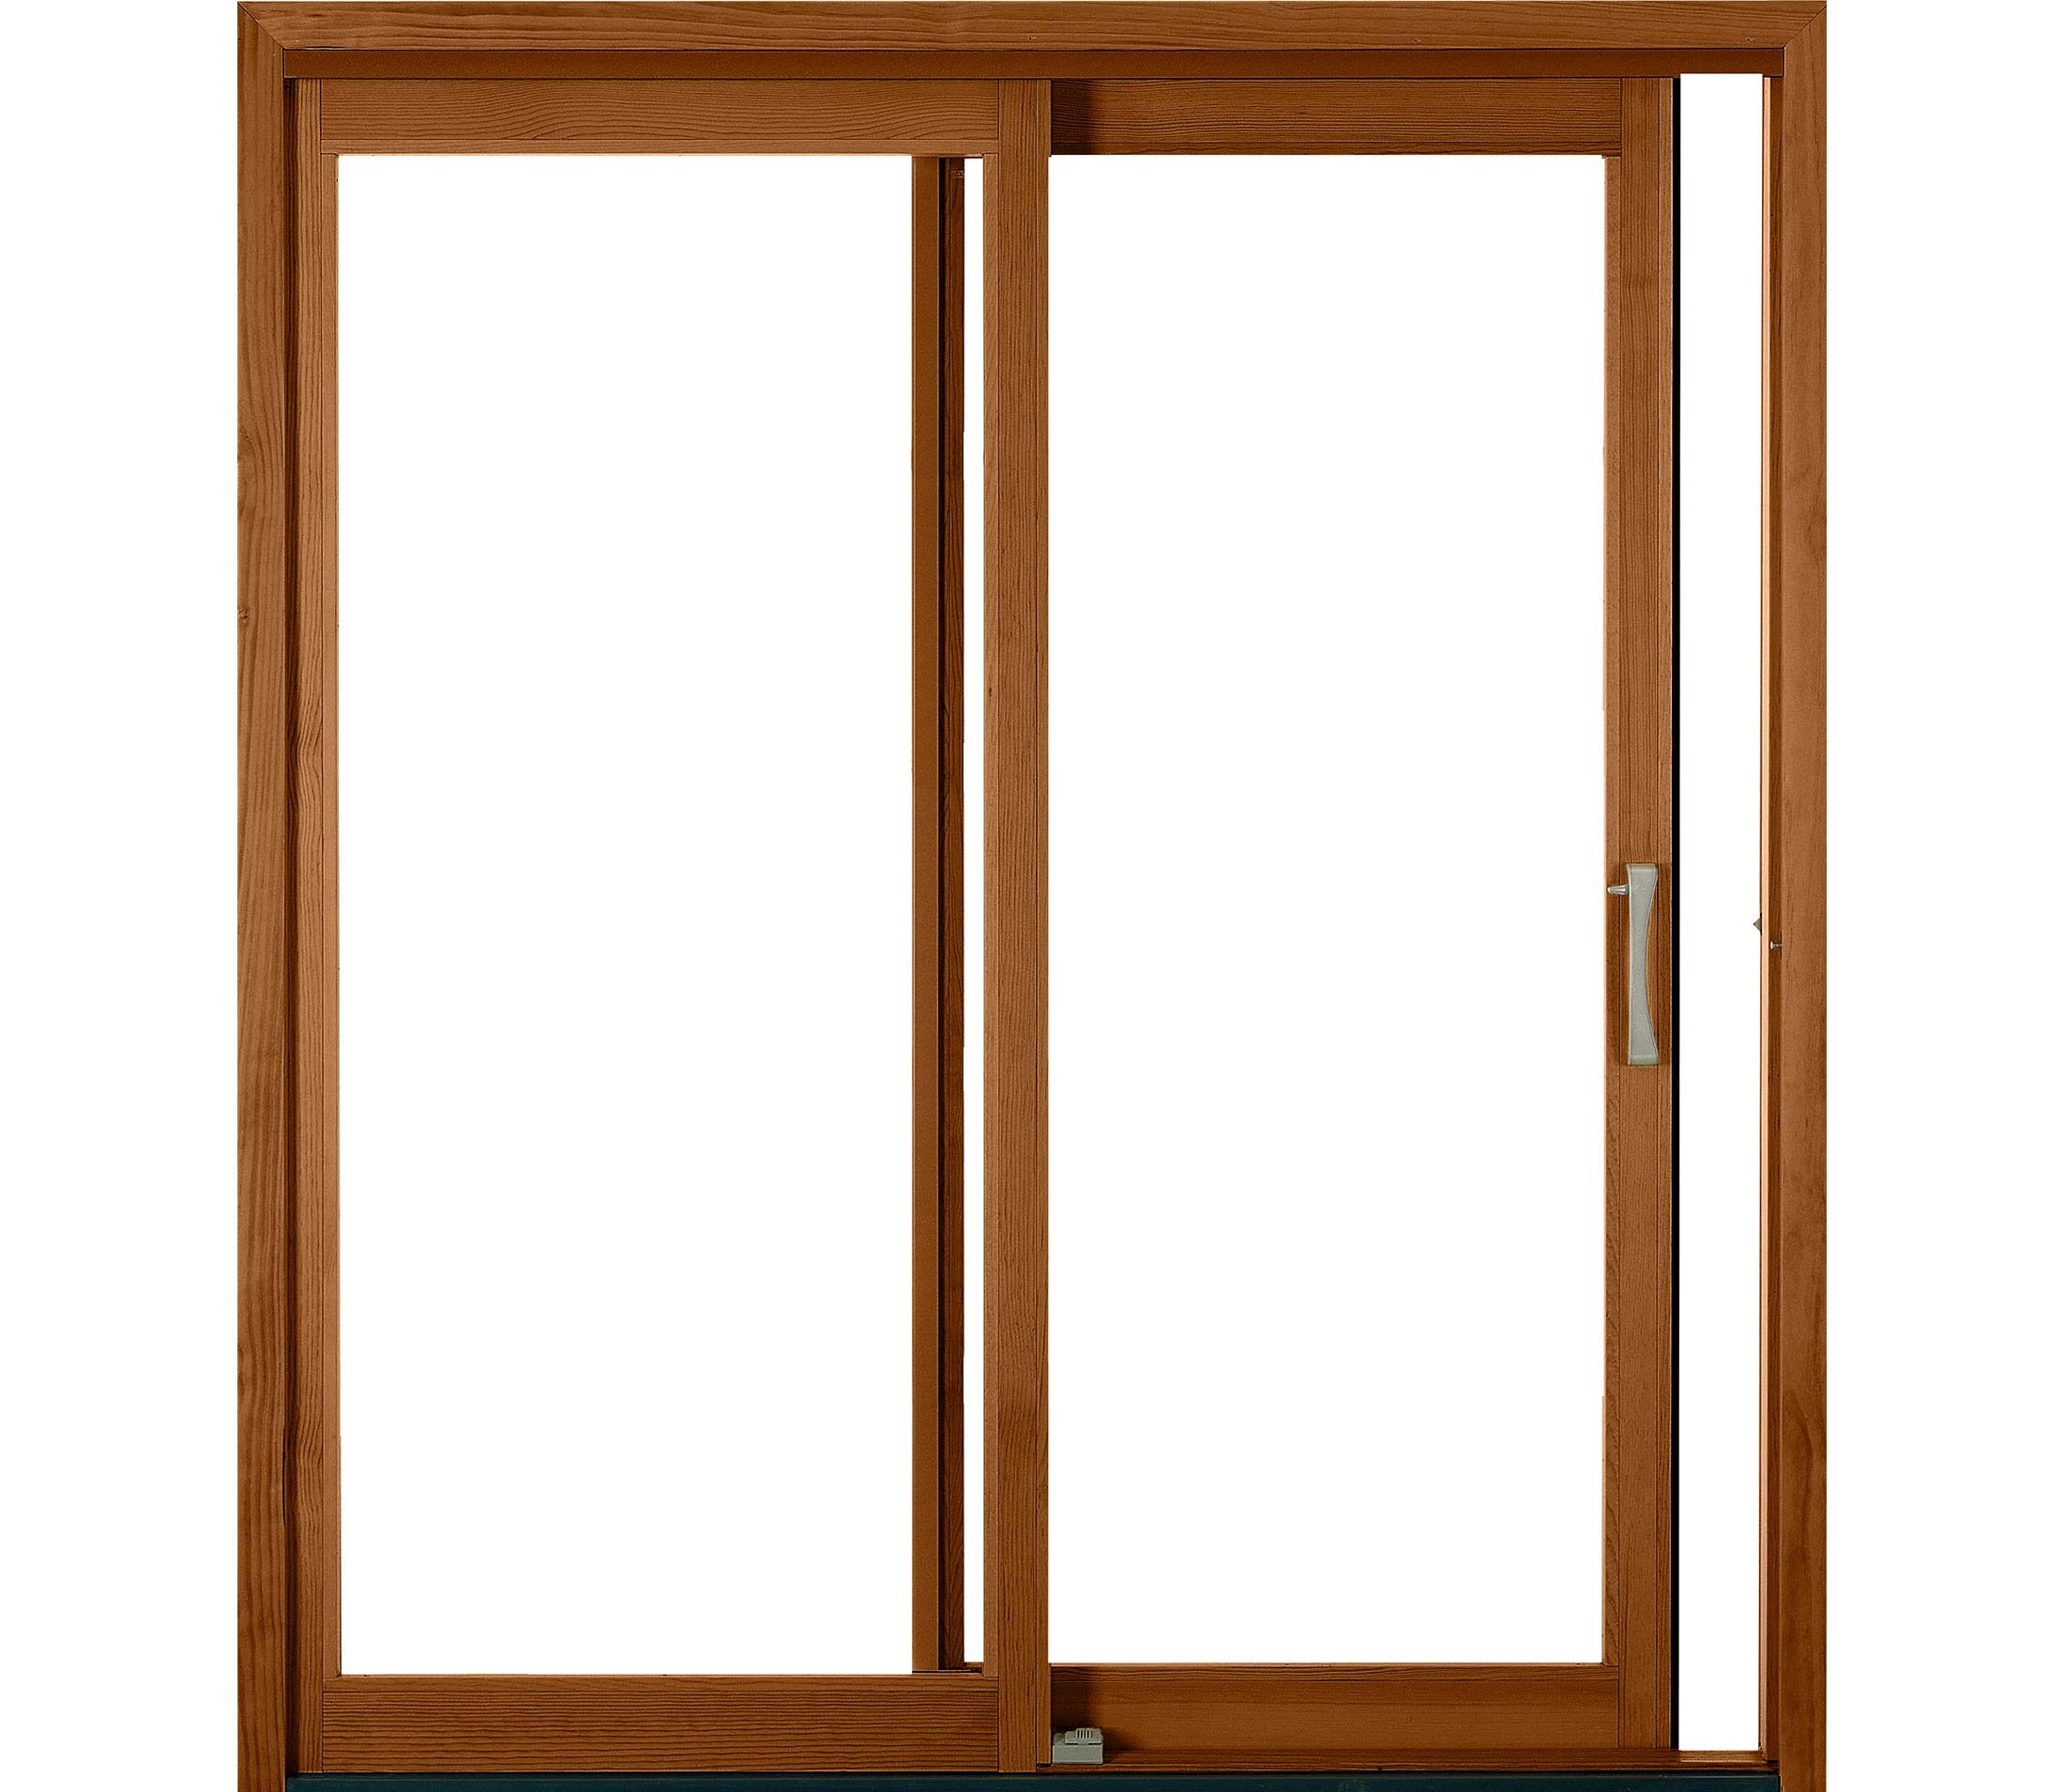 Pella proline 450 series sliding patio door pella modern pella proline wood sliding patio doors feature our most popular features and options at a competitive price including many found on our premium wood brands planetlyrics Image collections